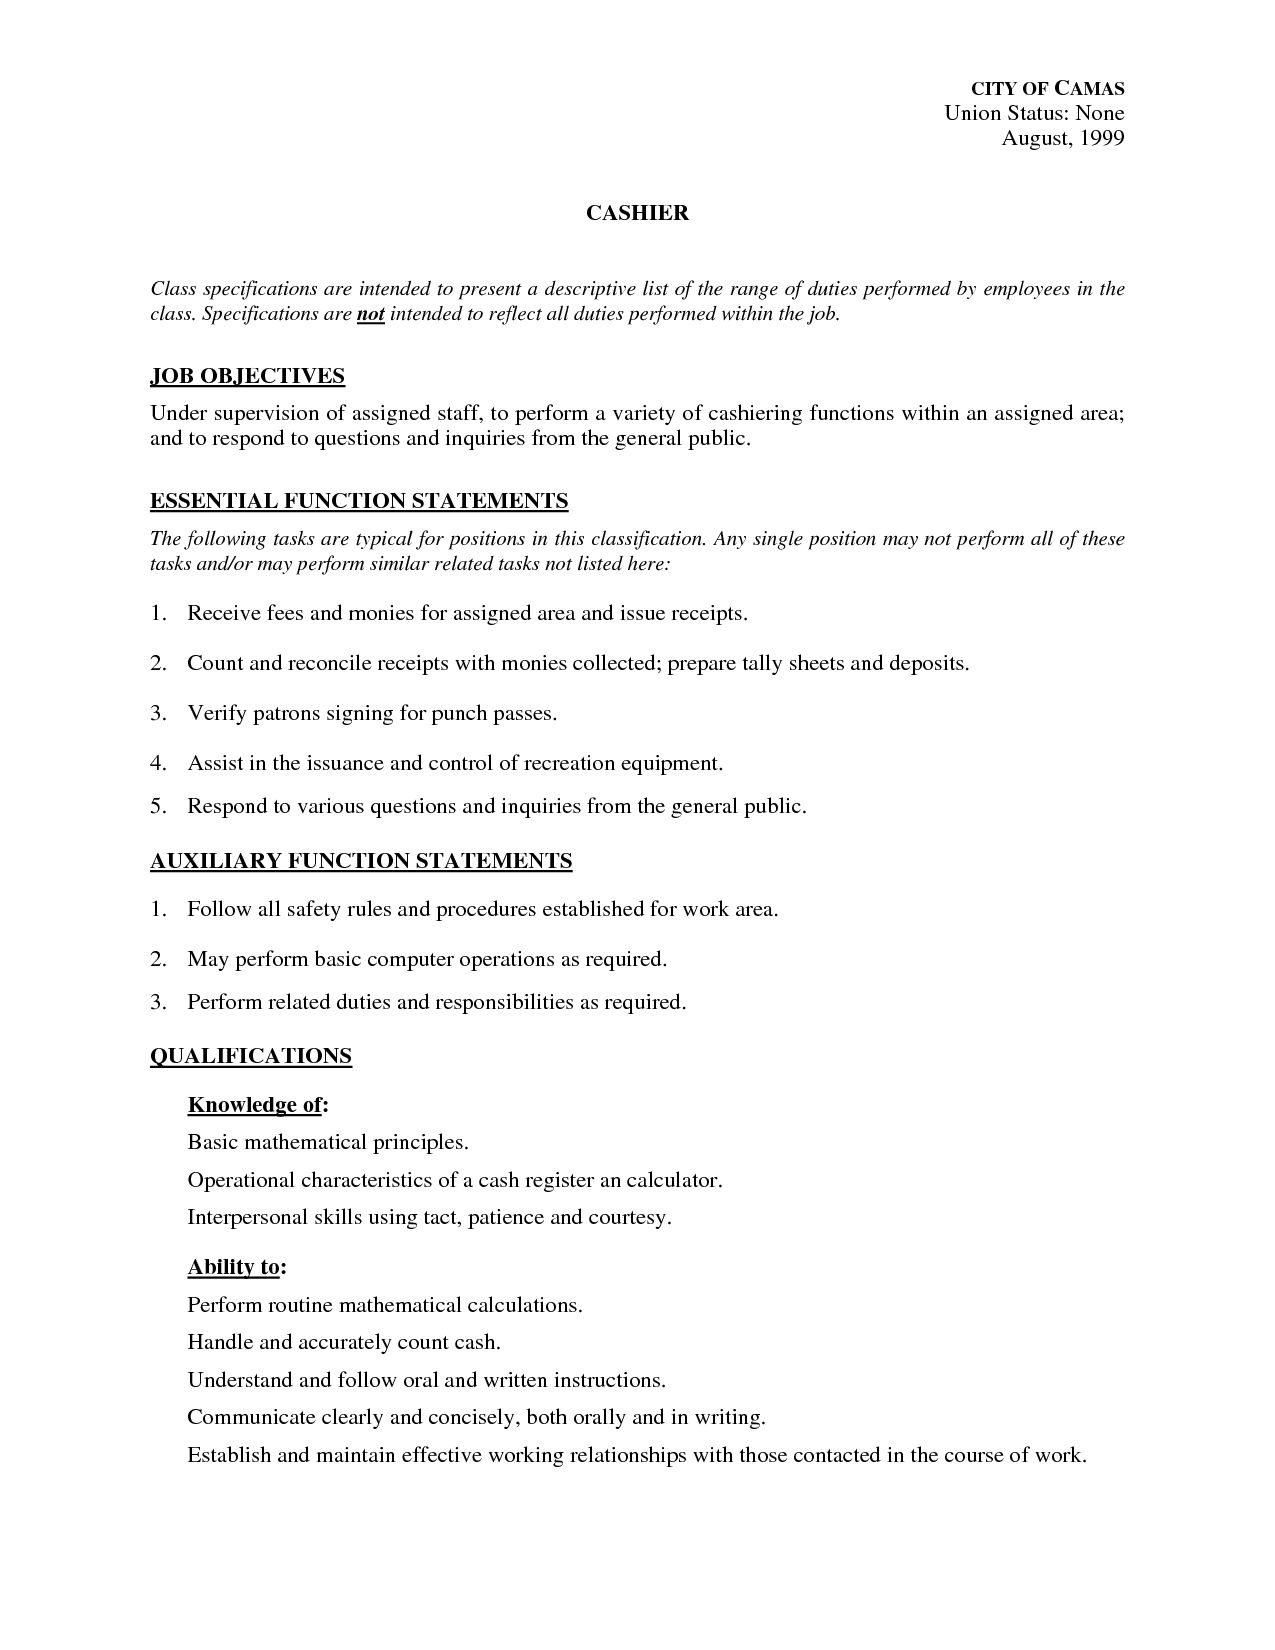 Job Descriptions For Resume Fascinating Resume Examples Job Duties  Resume Examples